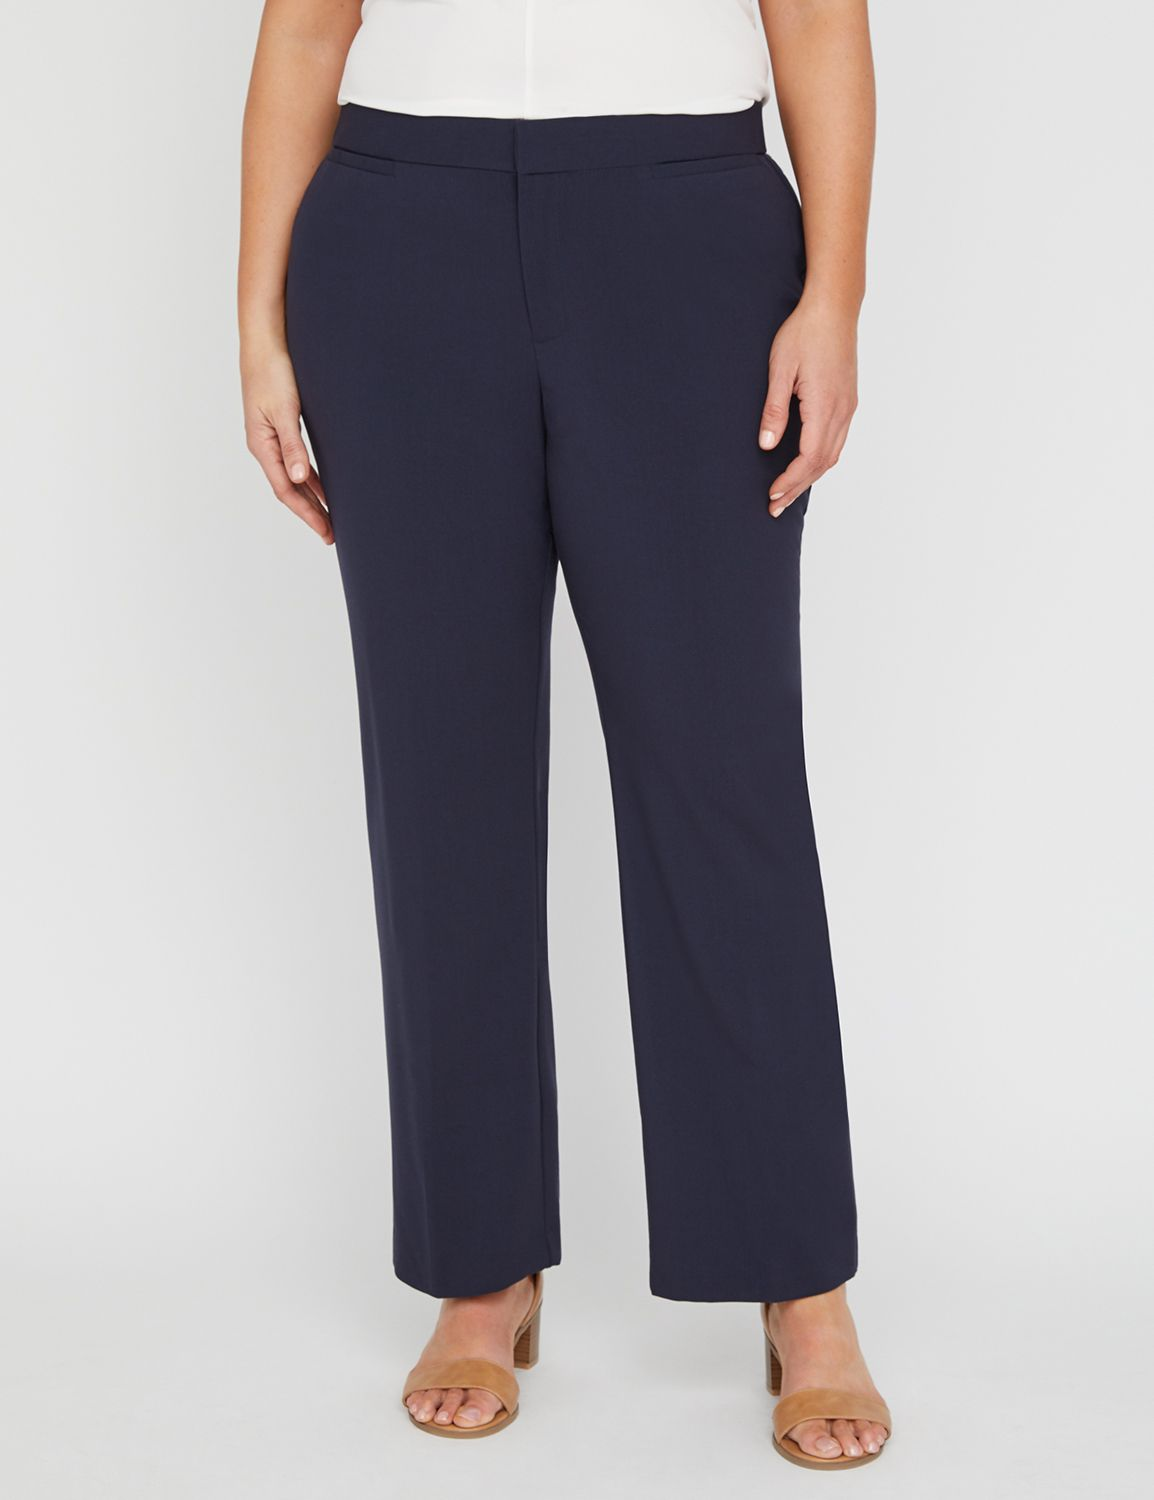 Right Fit Pant (Moderately Curvy) Right Fit Pant (Moderately Curvy) MP-300043675